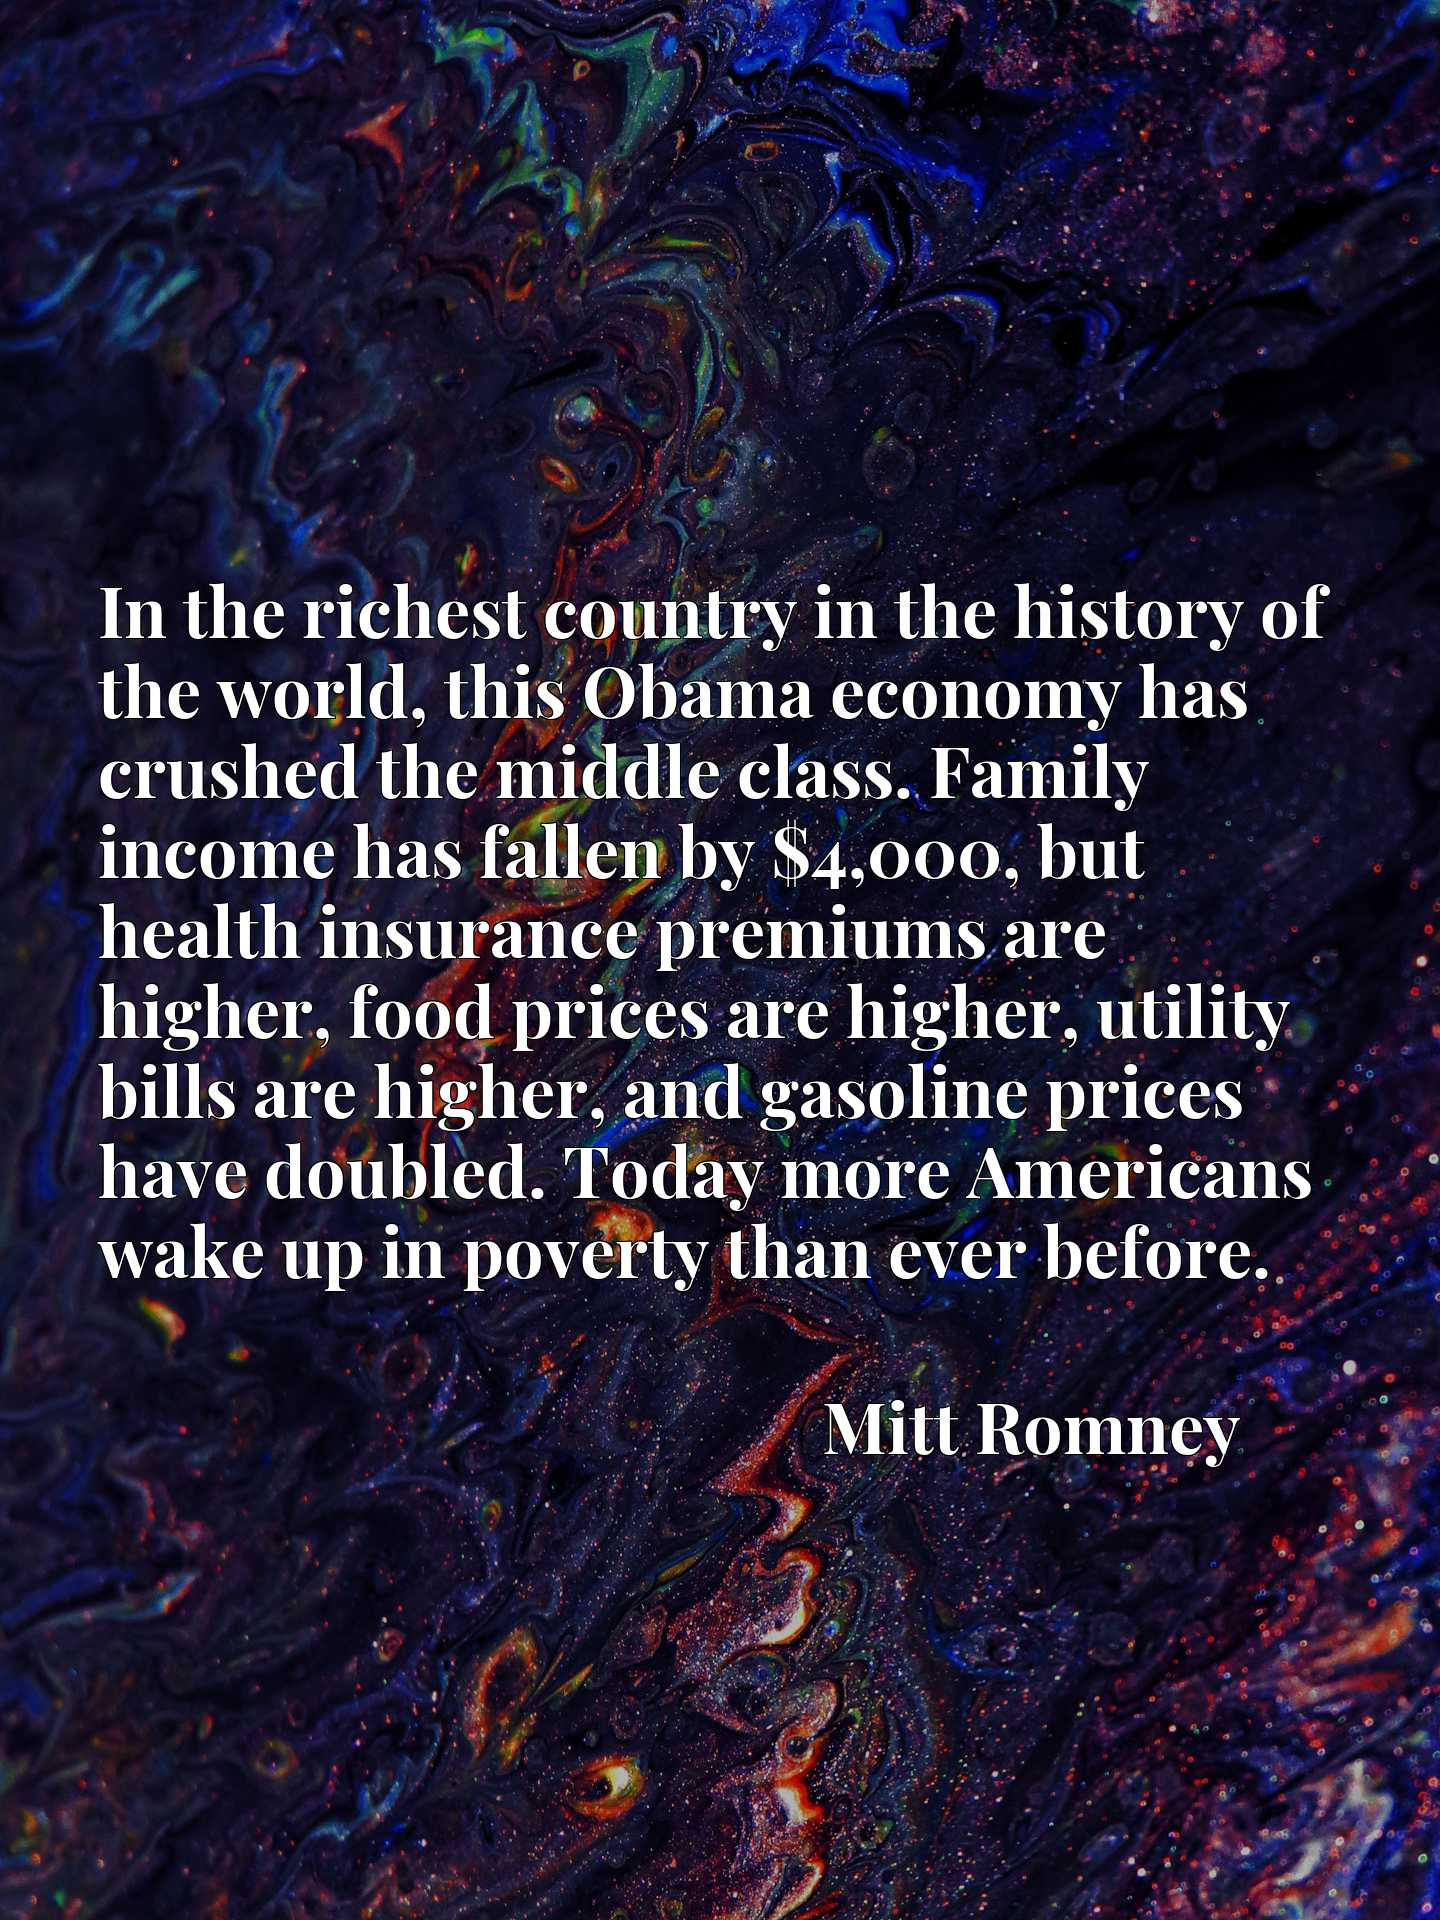 In the richest country in the history of the world, this Obama economy has crushed the middle class. Family income has fallen by $4,000, but health insurance premiums are higher, food prices are higher, utility bills are higher, and gasoline prices have doubled. Today more Americans wake up in poverty than ever before.